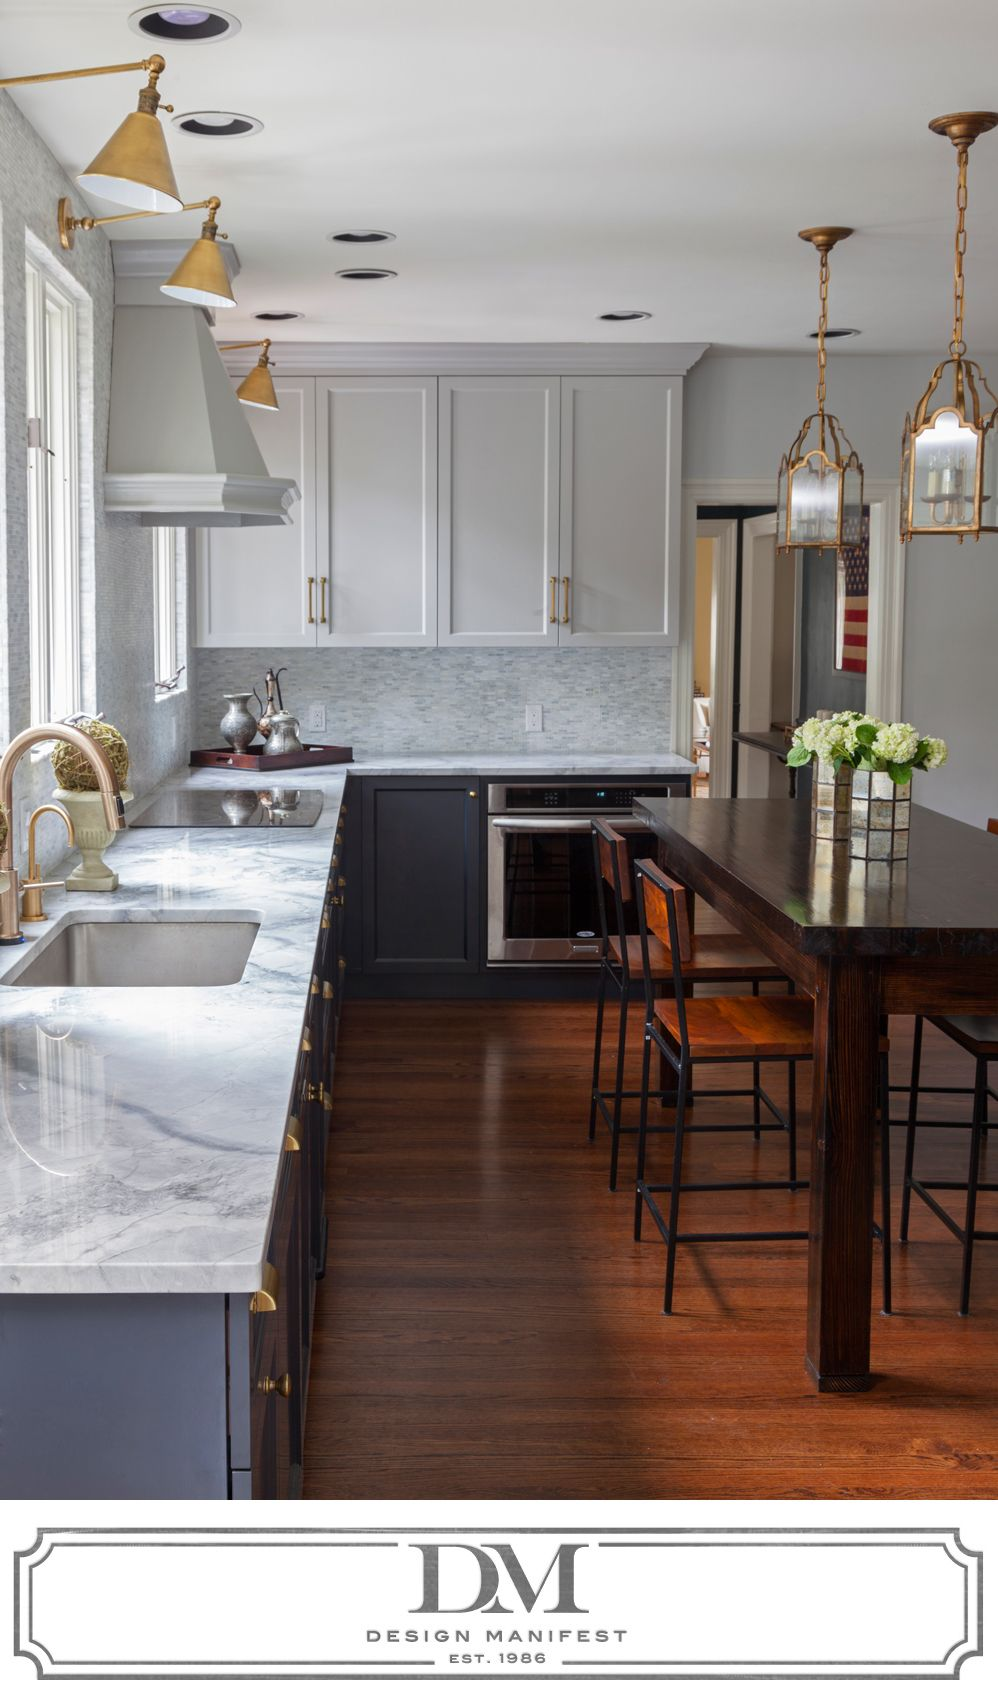 025323b26810fb4fb641c5f0da78b0b5 Bleu White Tile Kitchen Backsplash Ideas on white tile mosaic backsplash, kitchen with cherry cabinets ideas, mosaic tile for kitchen ideas, white tile bathroom remodeling ideas, white cabinets red backsplash, white on white tile backsplash, white subway tile herringbone backsplash, white tile paint ideas, white backsplash tiles for kitchen, white subway tile mosaic, white tile kitchen tile, white marble with gray tile for backsplash, old west kitchen ideas, white tile living room ideas, white tile kitchen decor, modern kitchen backsplashes ideas, white tile kitchen tables, white cabinets with butcher block countertops, white kitchen with subway tile black grout, white tile kitchen flooring,